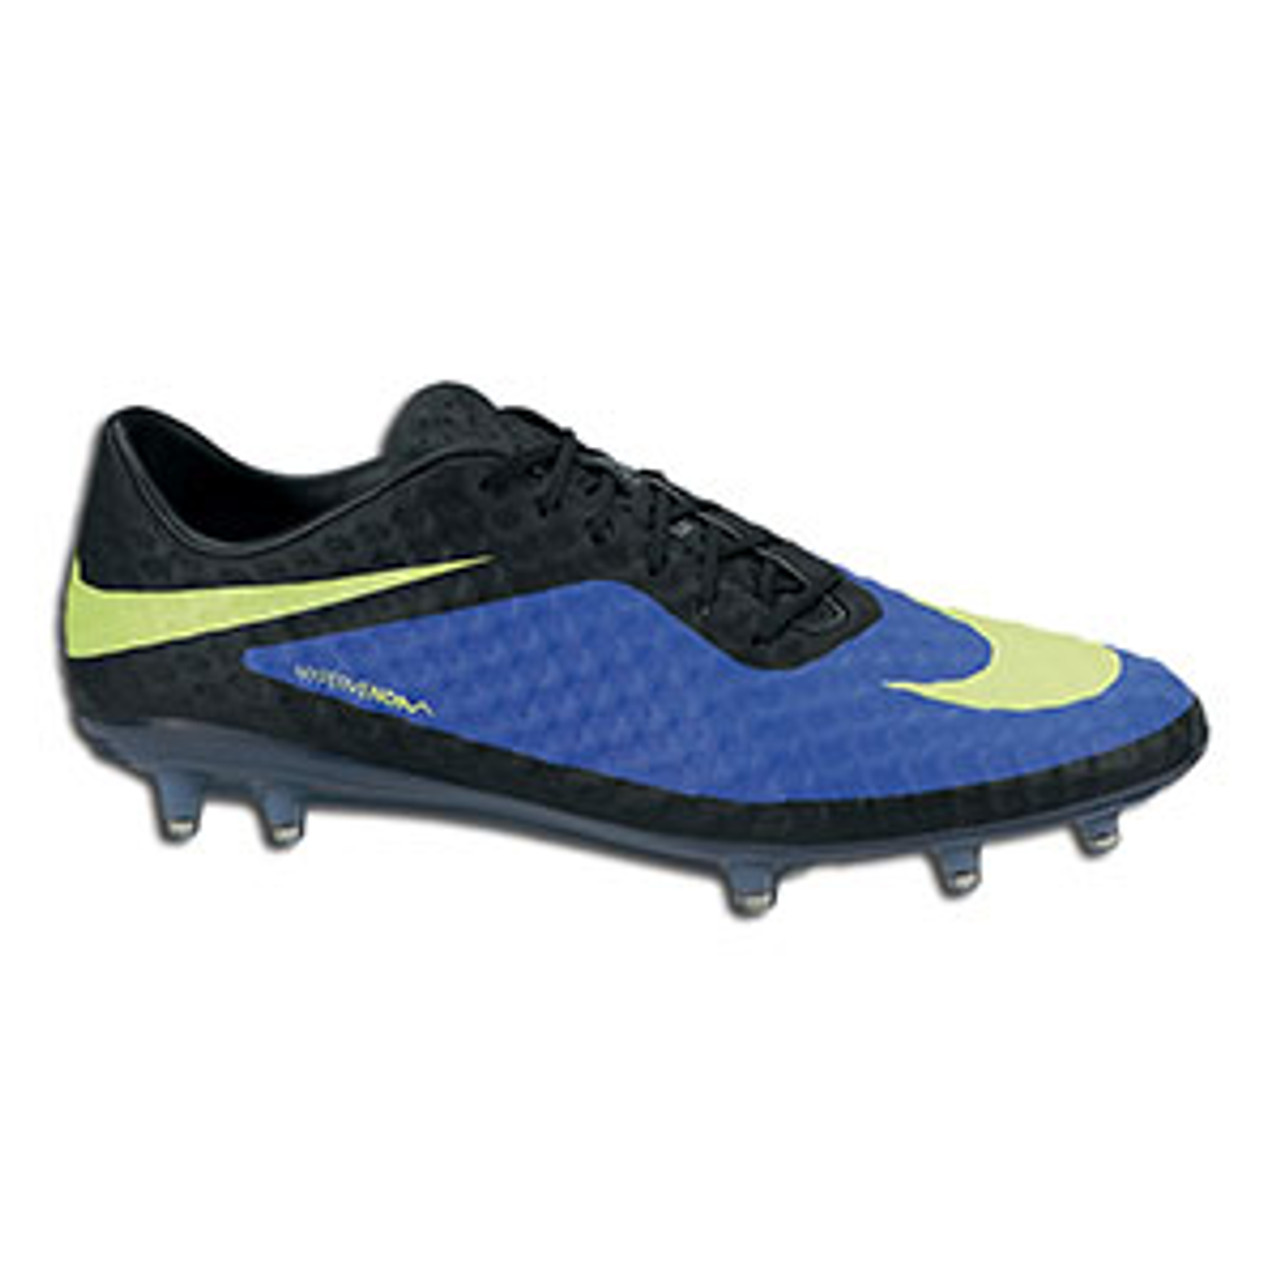 low priced eb90b b7ff4 NIKE HYPERVENOM PHANTOM FG blue/black/yellow